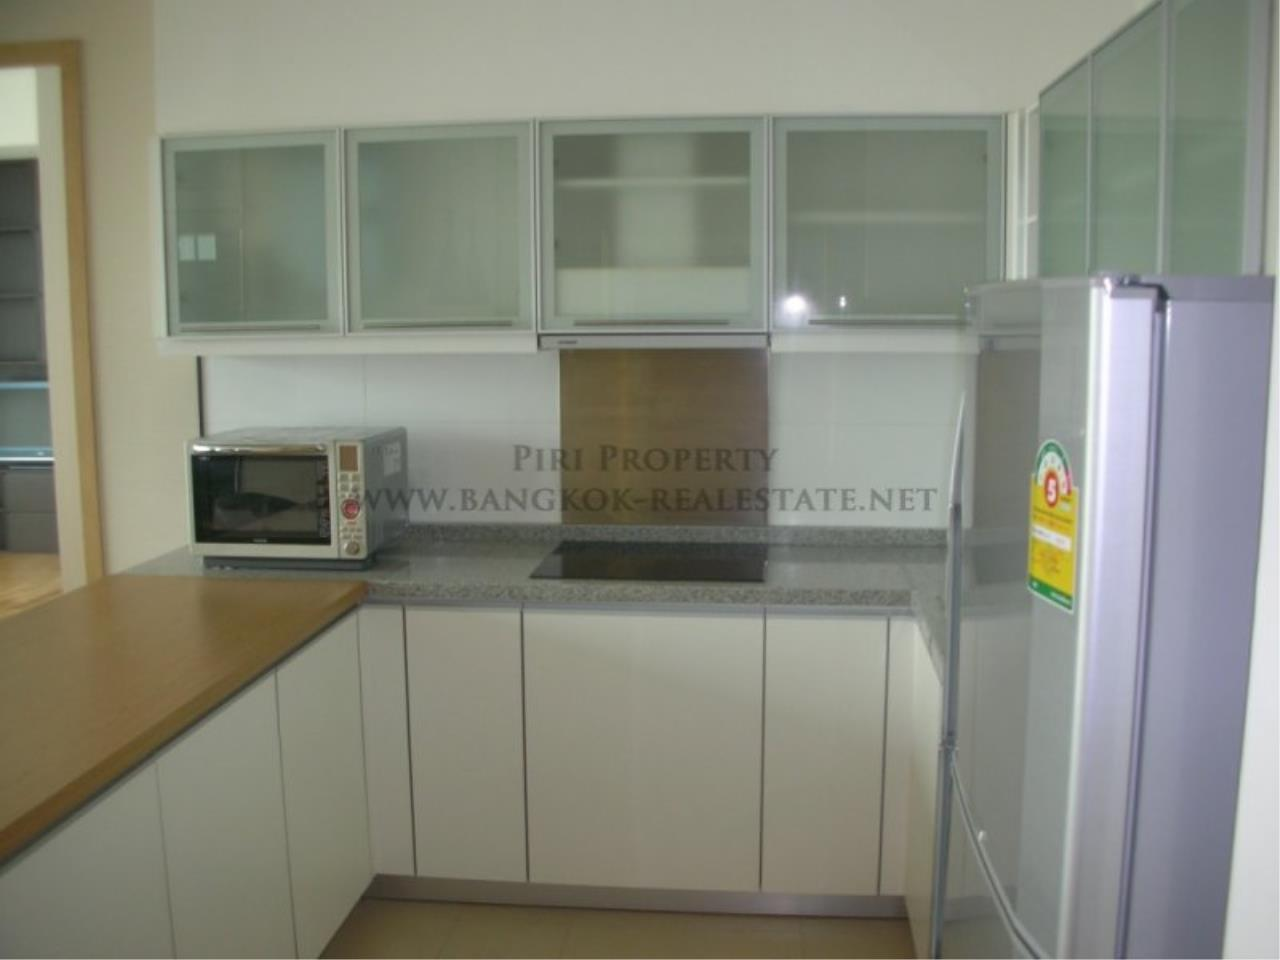 Piri Property Agency's 1 Bedroom - Millennium Residence - High Floor - Foreign Quota 4